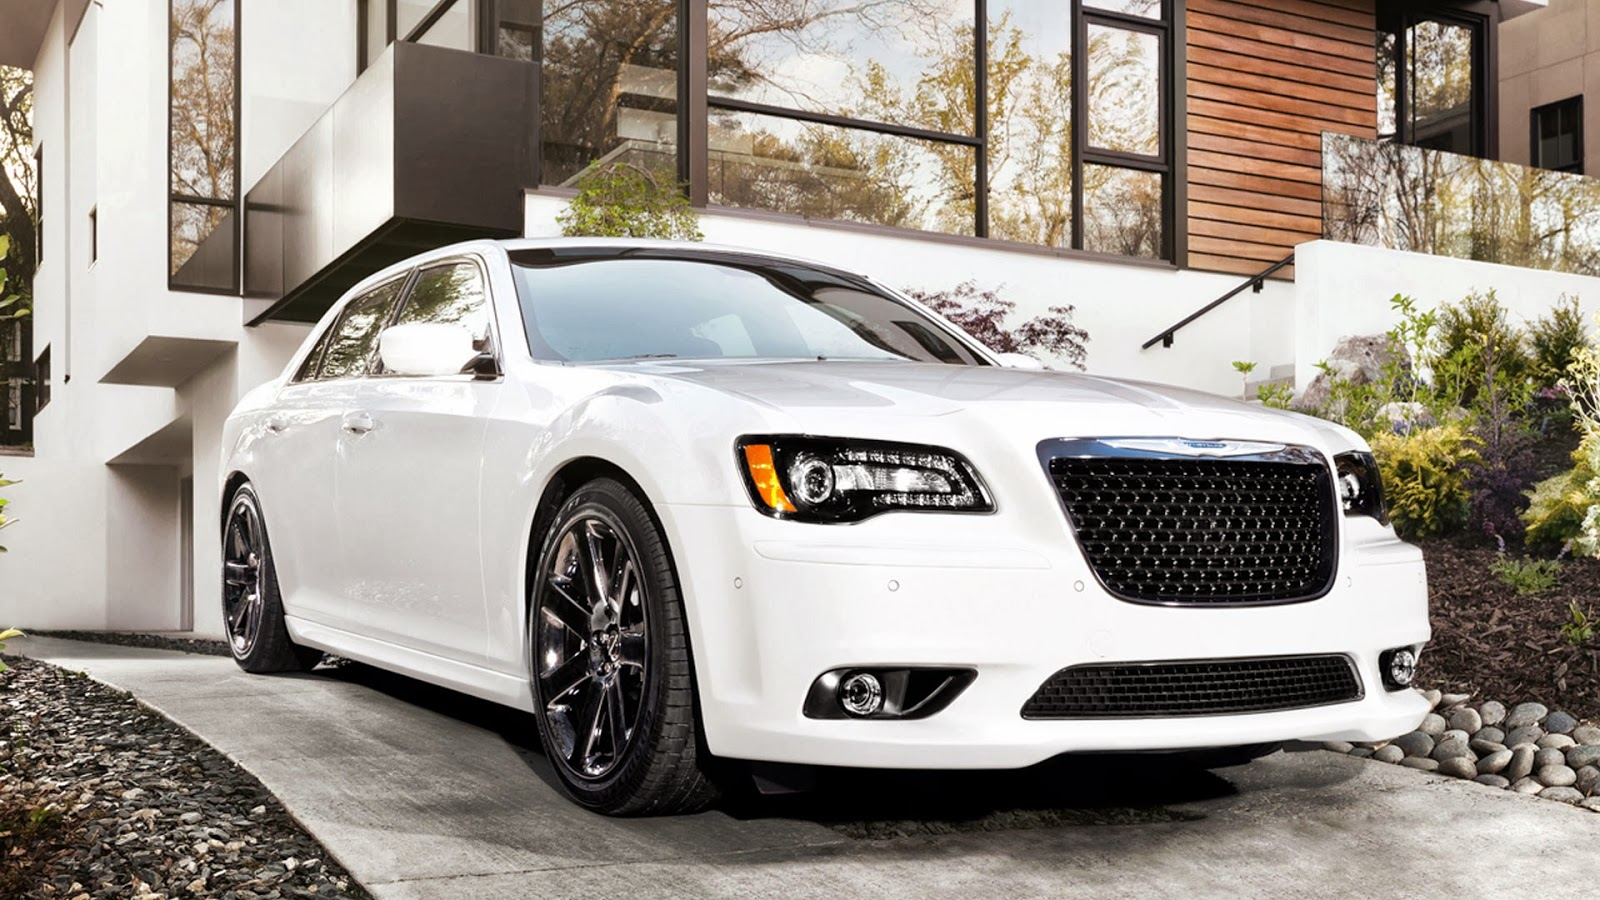 chrysler 300 srt8 core prices photos just welcome to. Black Bedroom Furniture Sets. Home Design Ideas